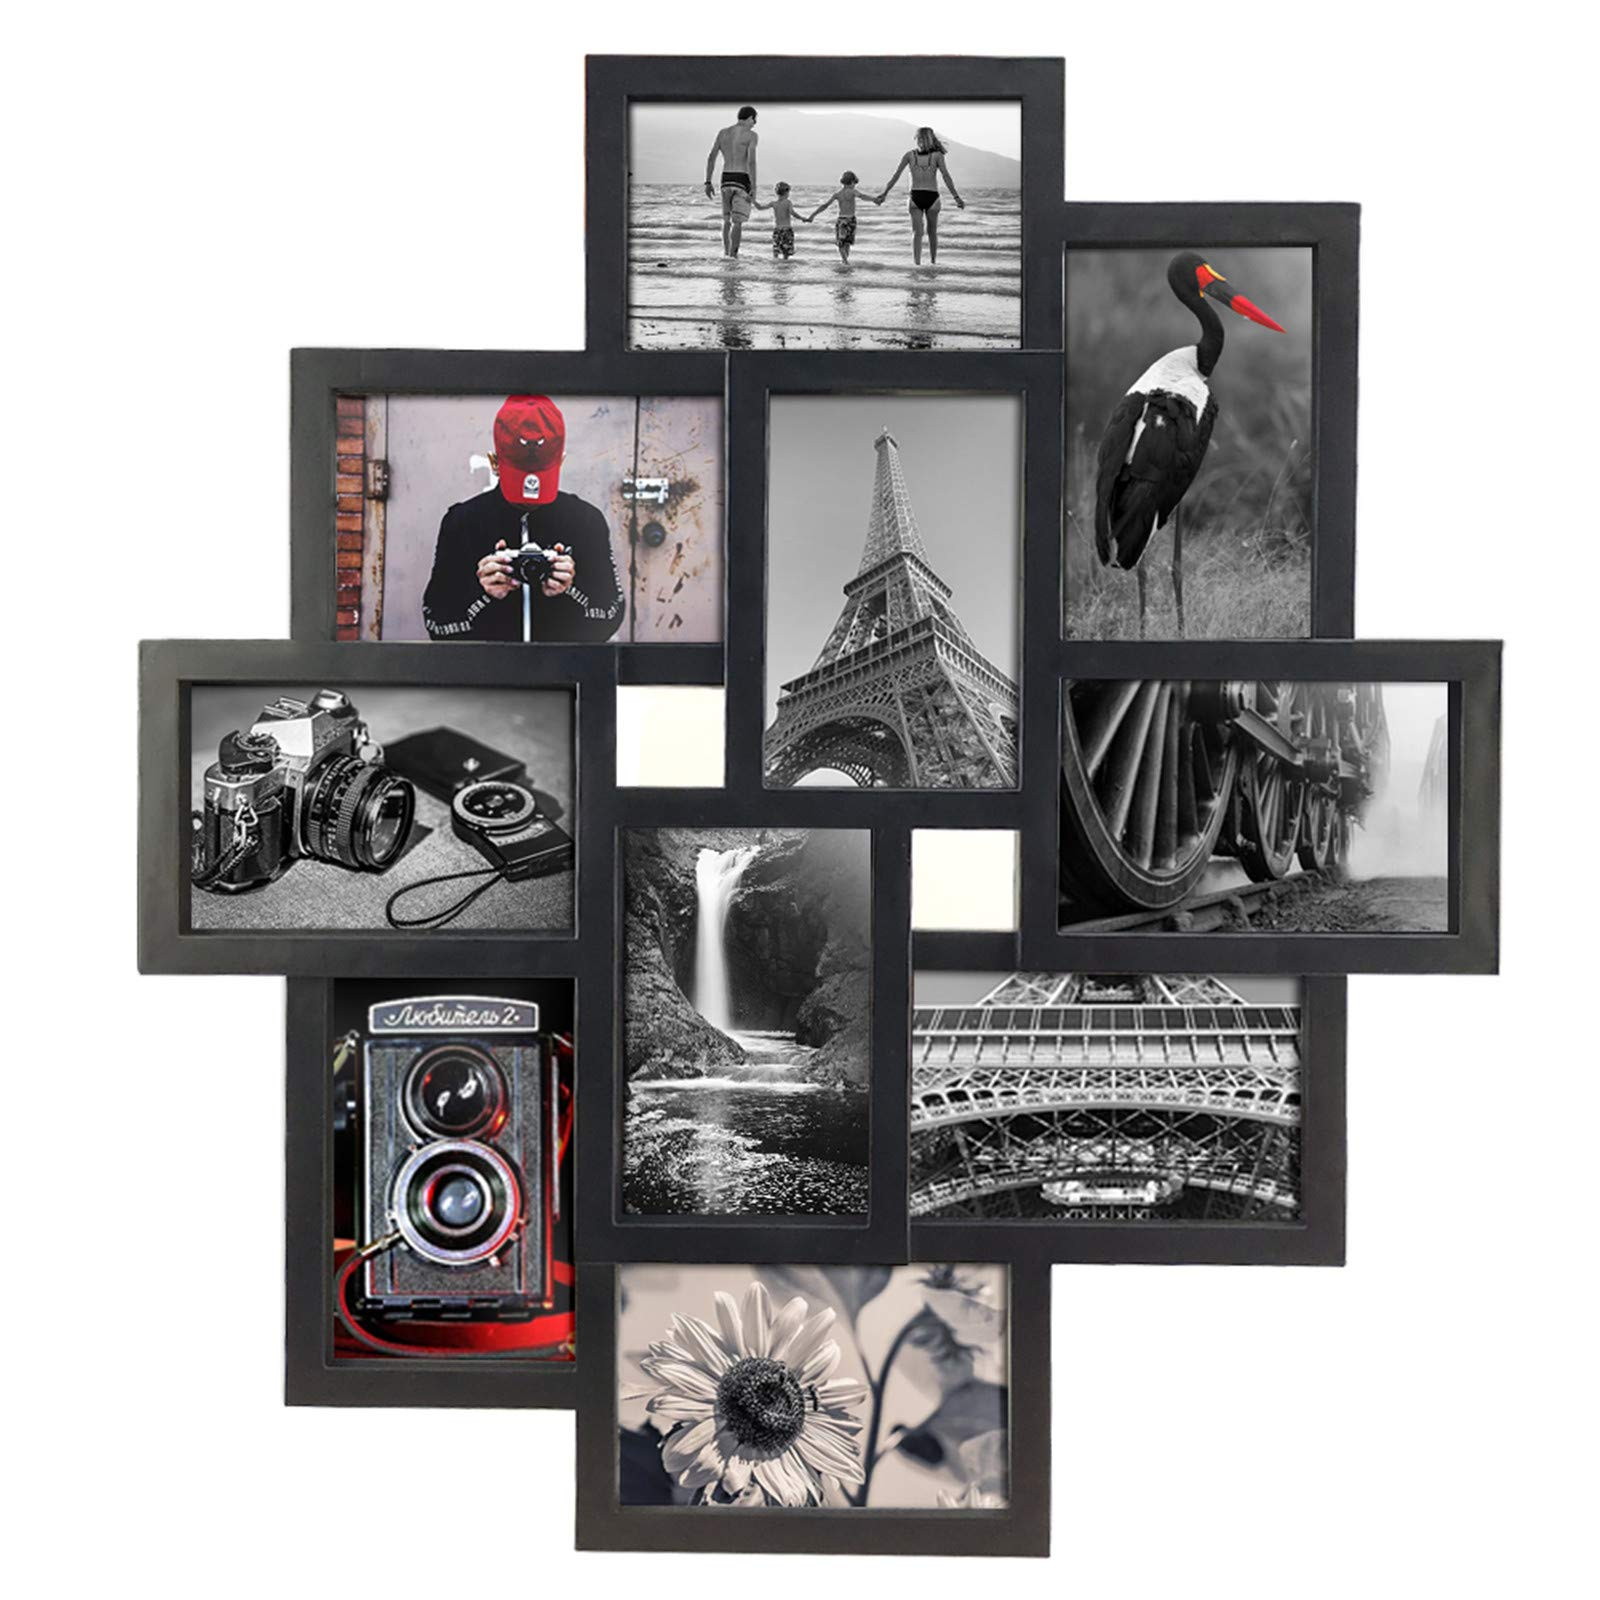 Lavezee 10 Opening 4x6 Black Collage Picture Frame Wall Hanging For 4 By 6 Inch Multiple Photo Frames Buy Online In Belize At Belize Desertcart Com Productid 141634713